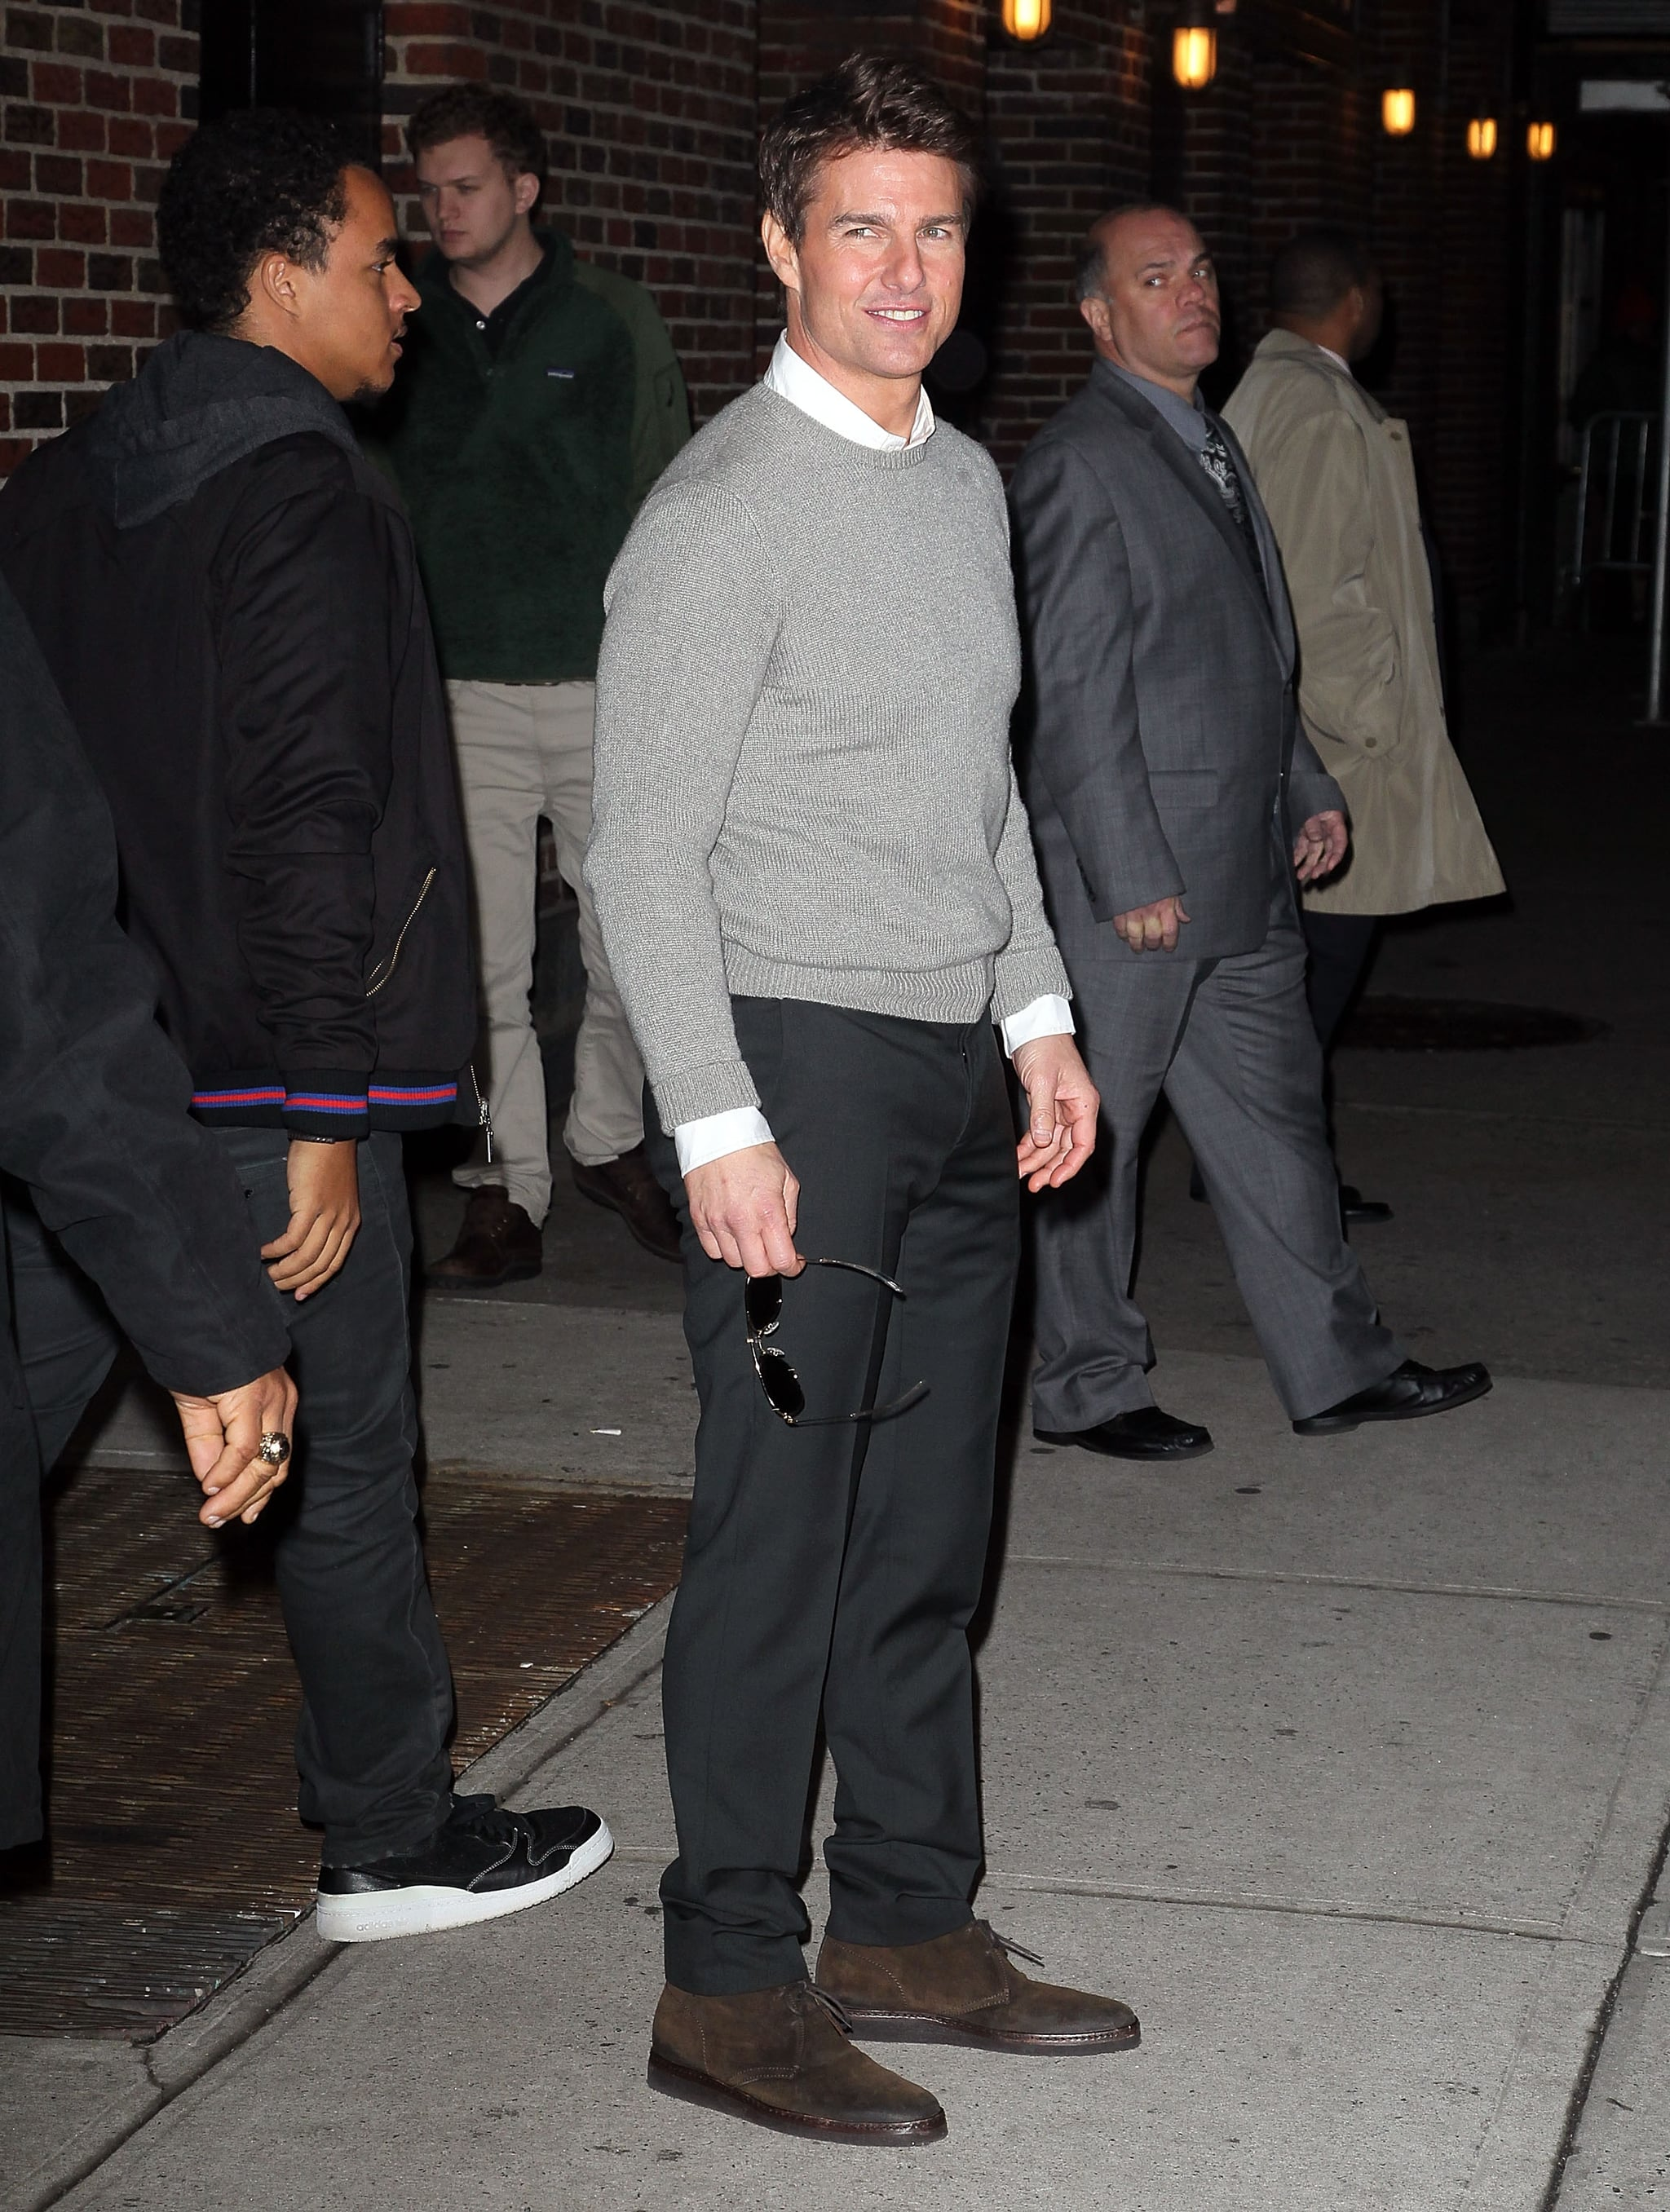 Tom Cruise wore a gray sweater and black pants.